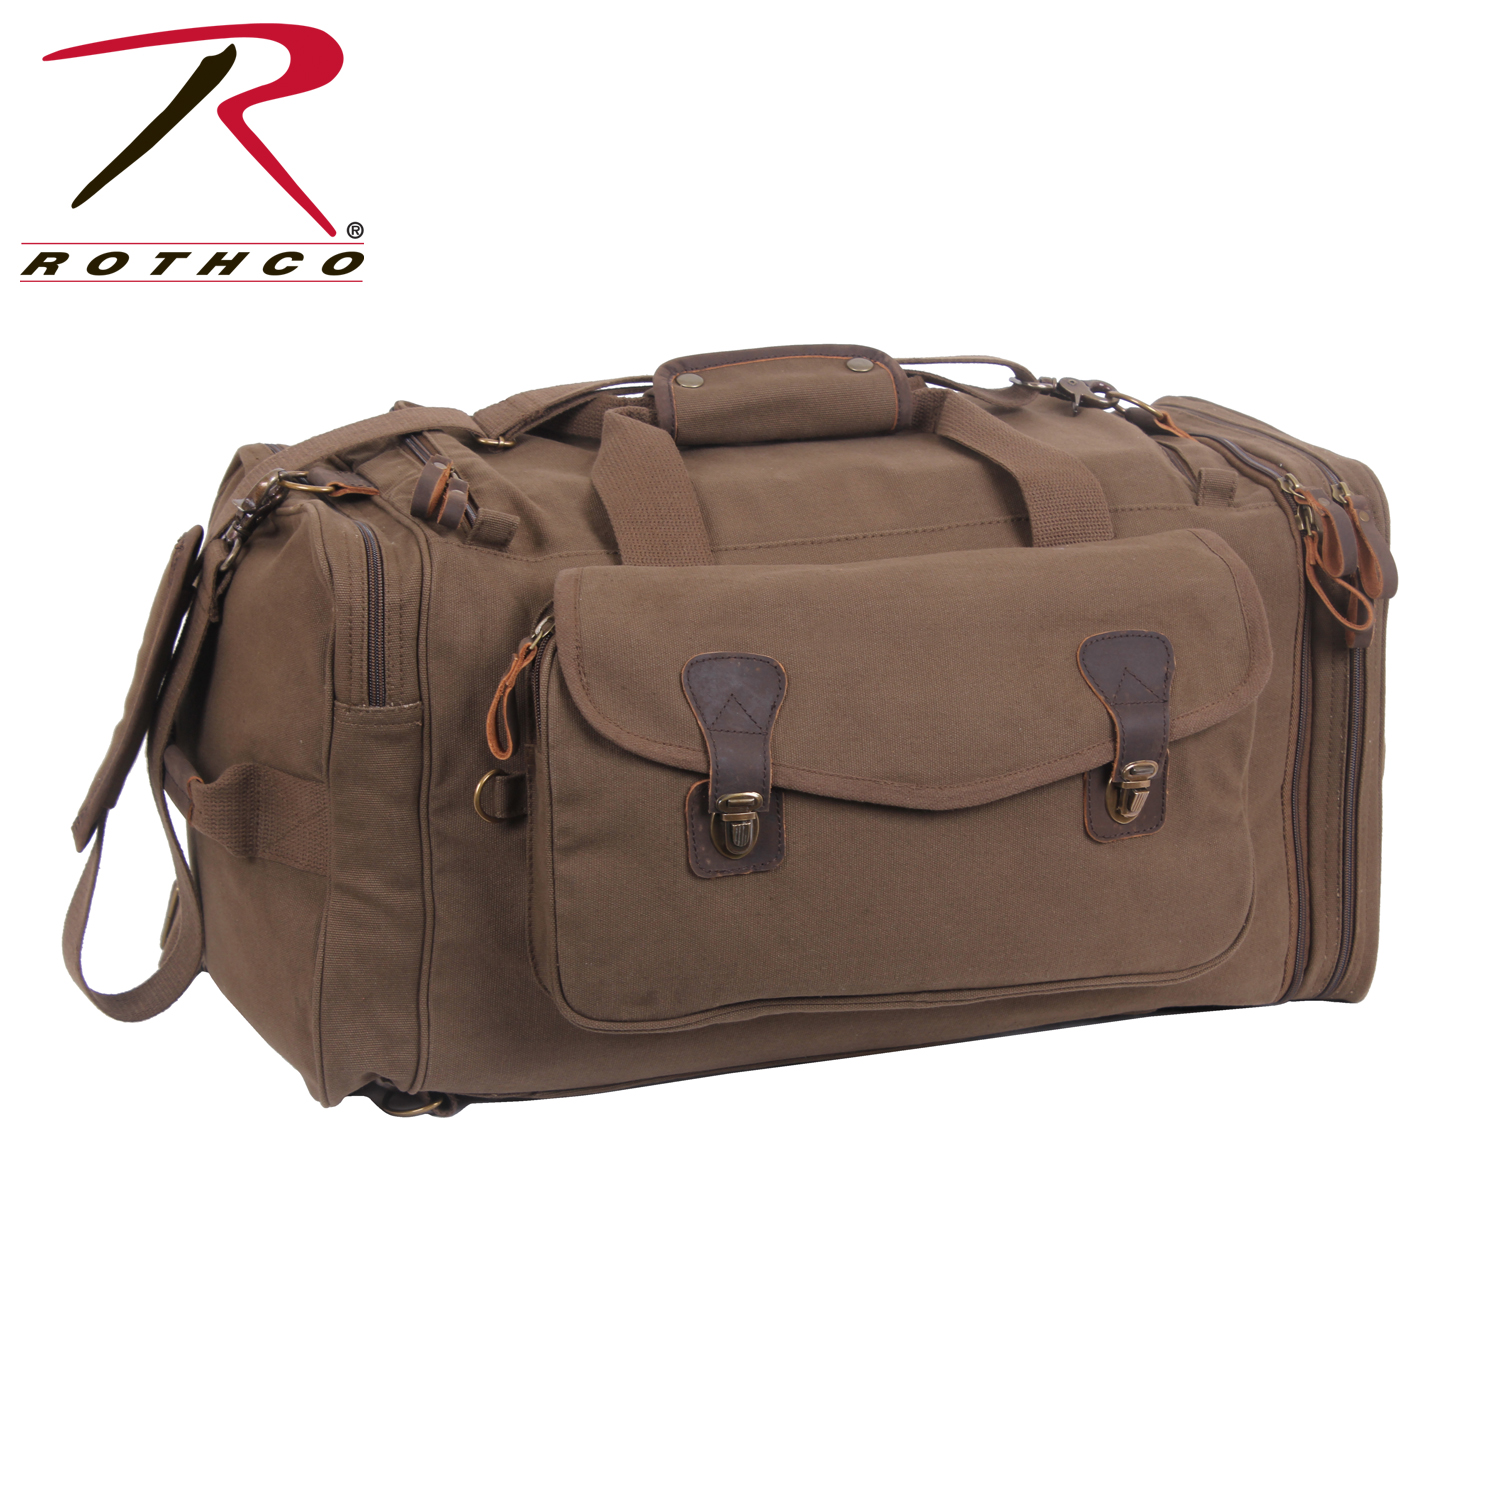 9bdcaa76d ... canvas extended stay travel duffle bag, canvas. Loading zoom